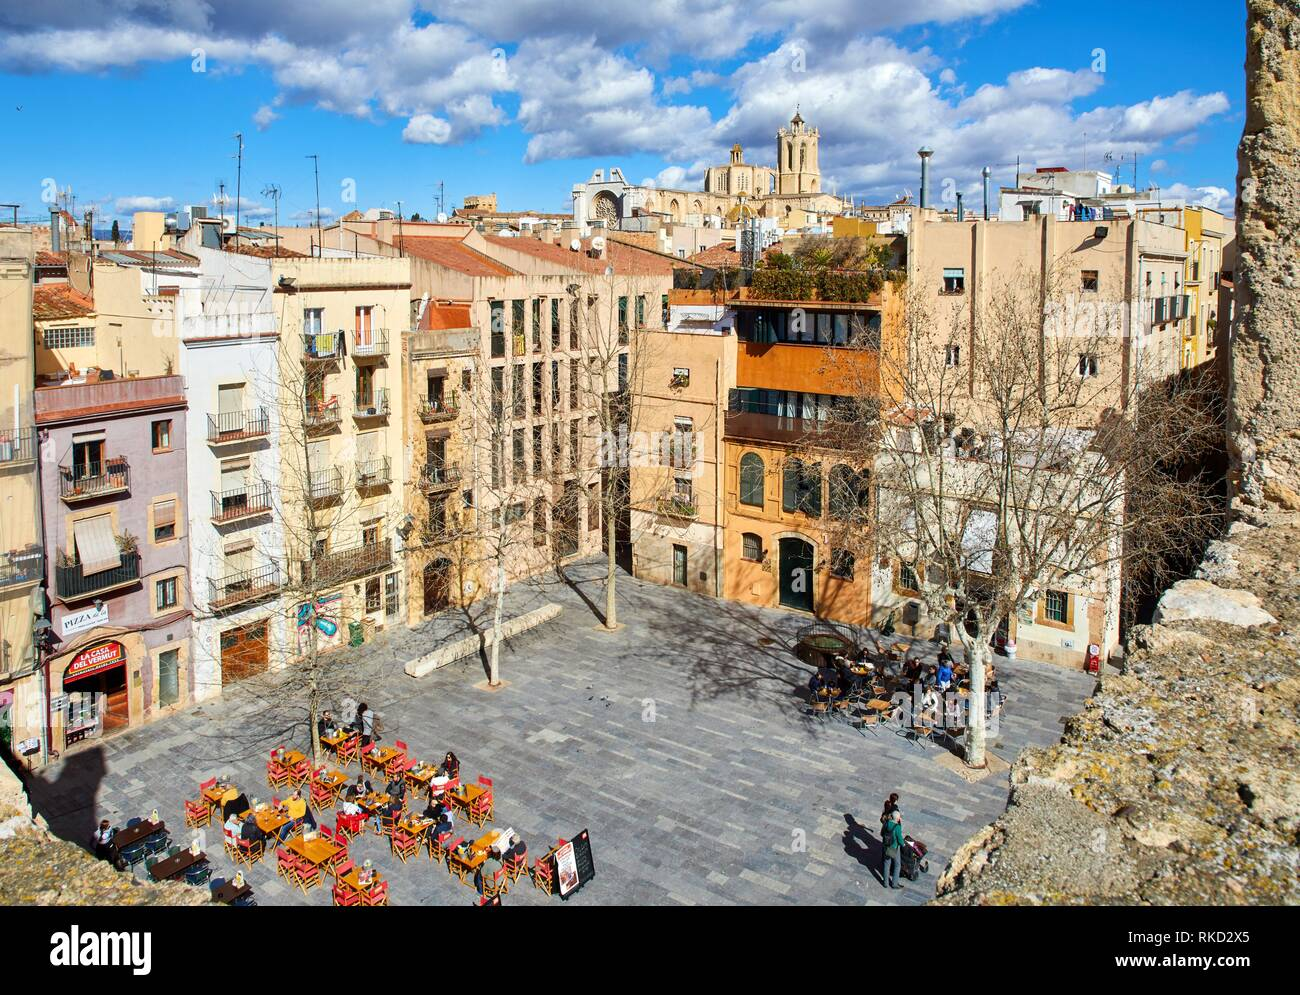 View from Roman Praetorium, Plaça del Rei, Tarragona City, Catalonia, Spain, Europe - Stock Image